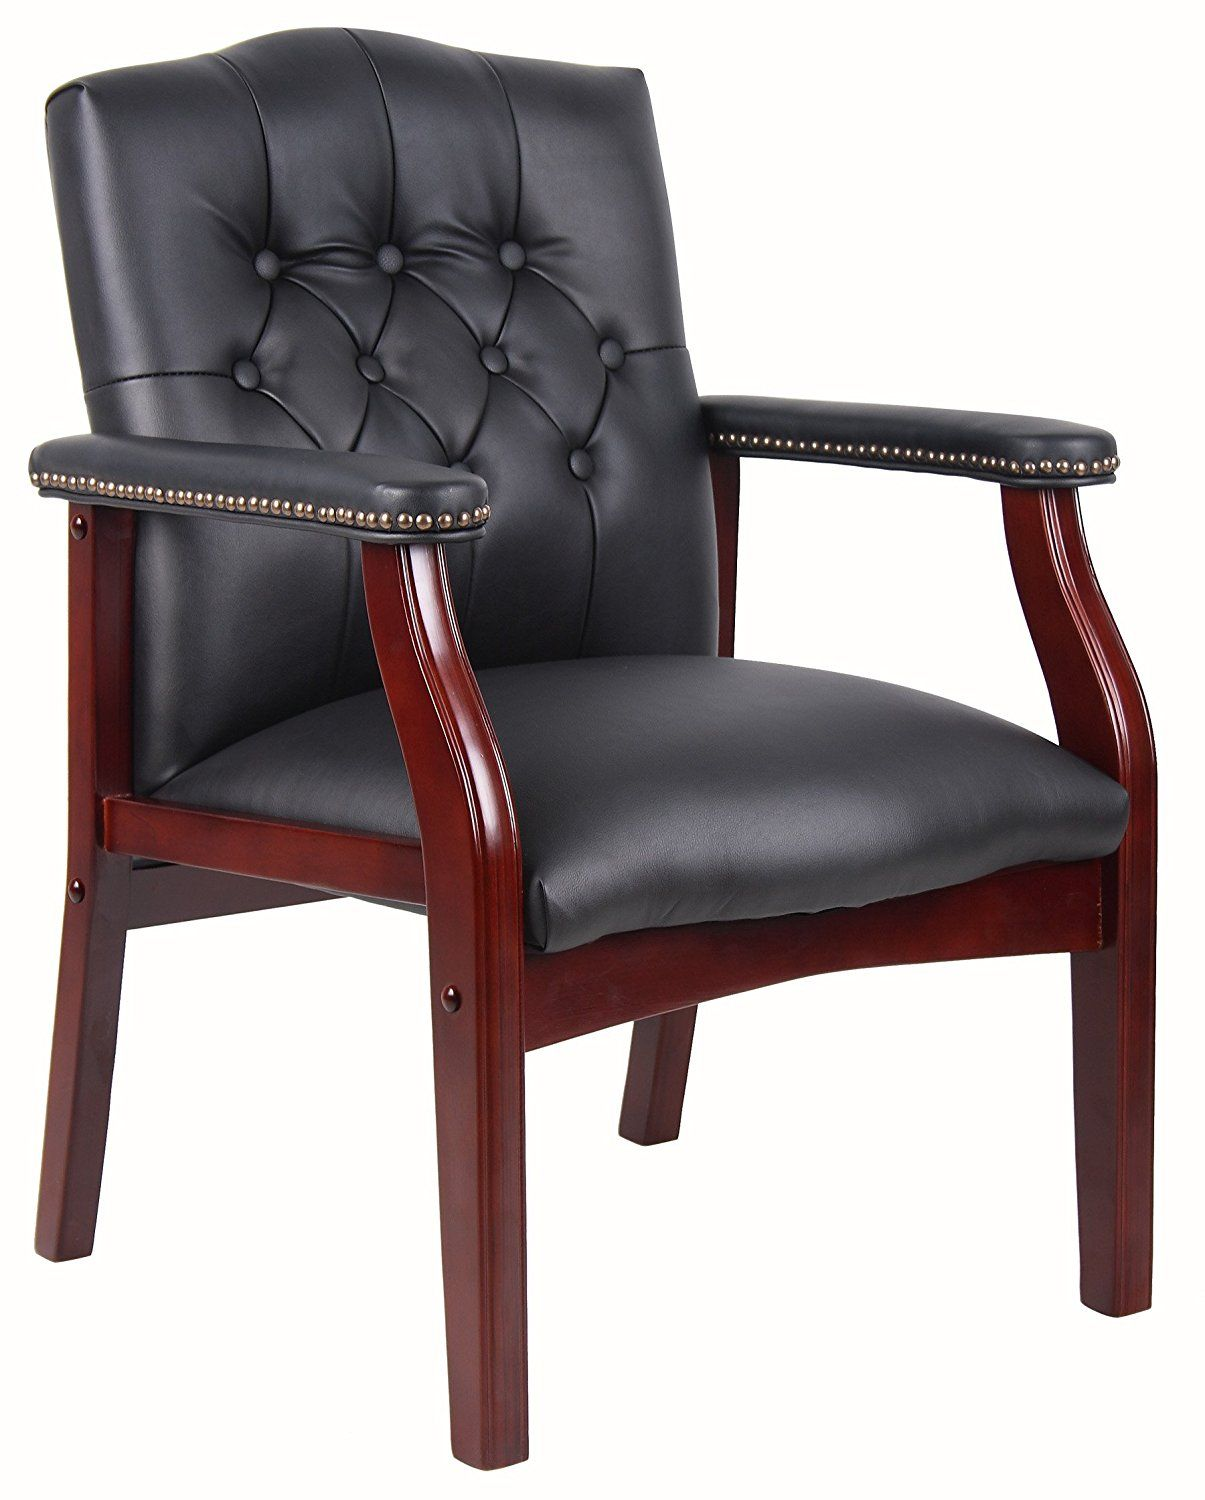 Executive Guest Chair from Boss Office Products